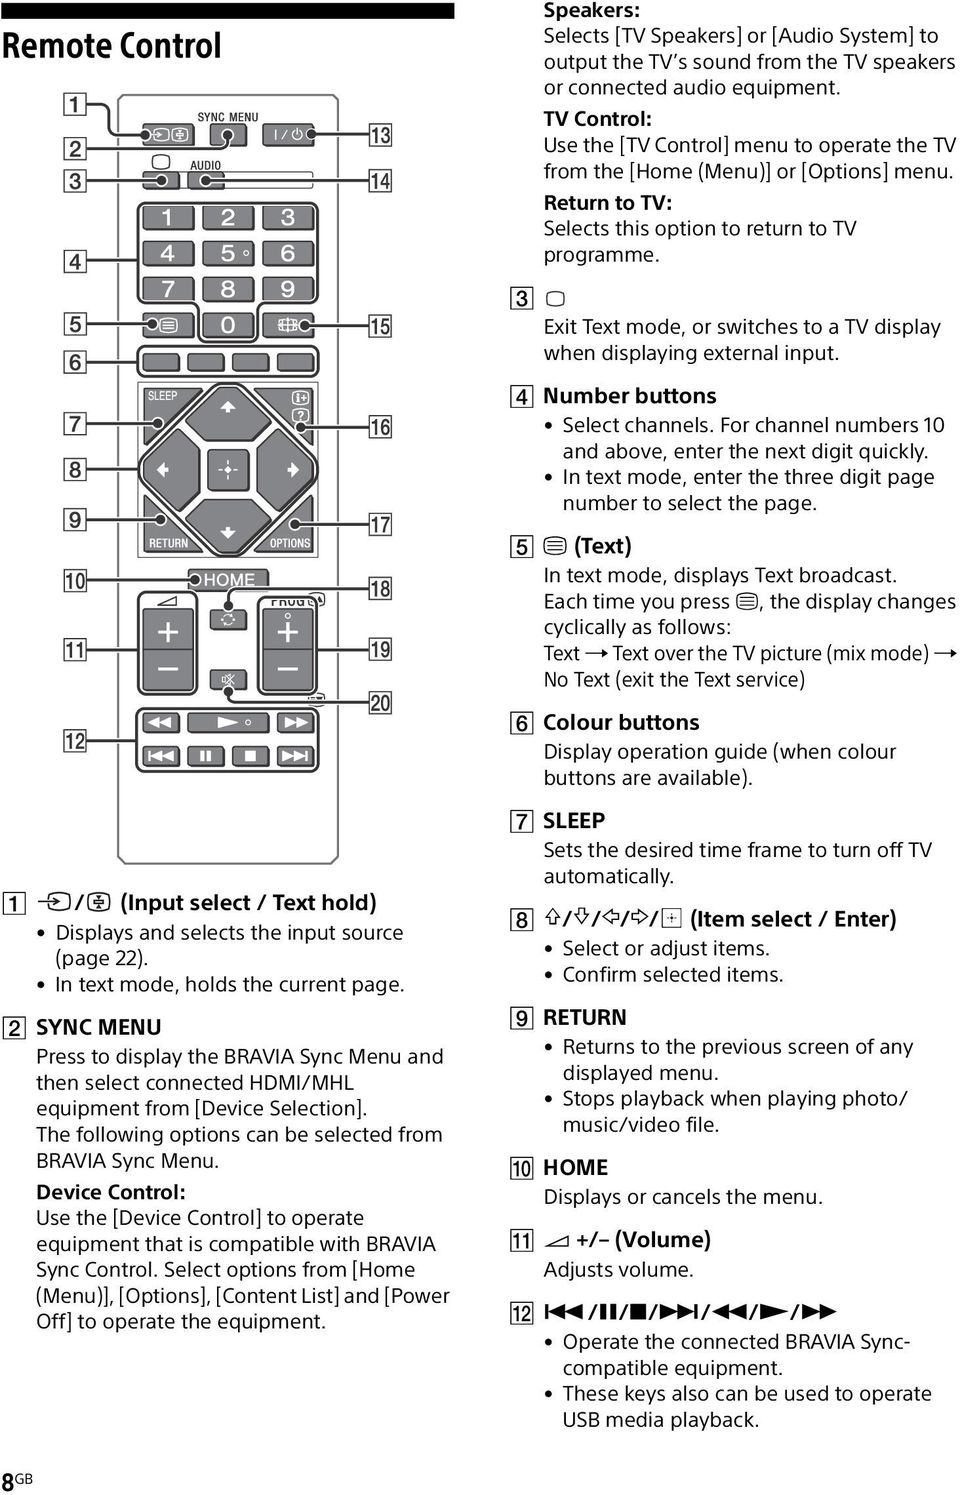 Table of Contents  Additional Information  Parts and Controls